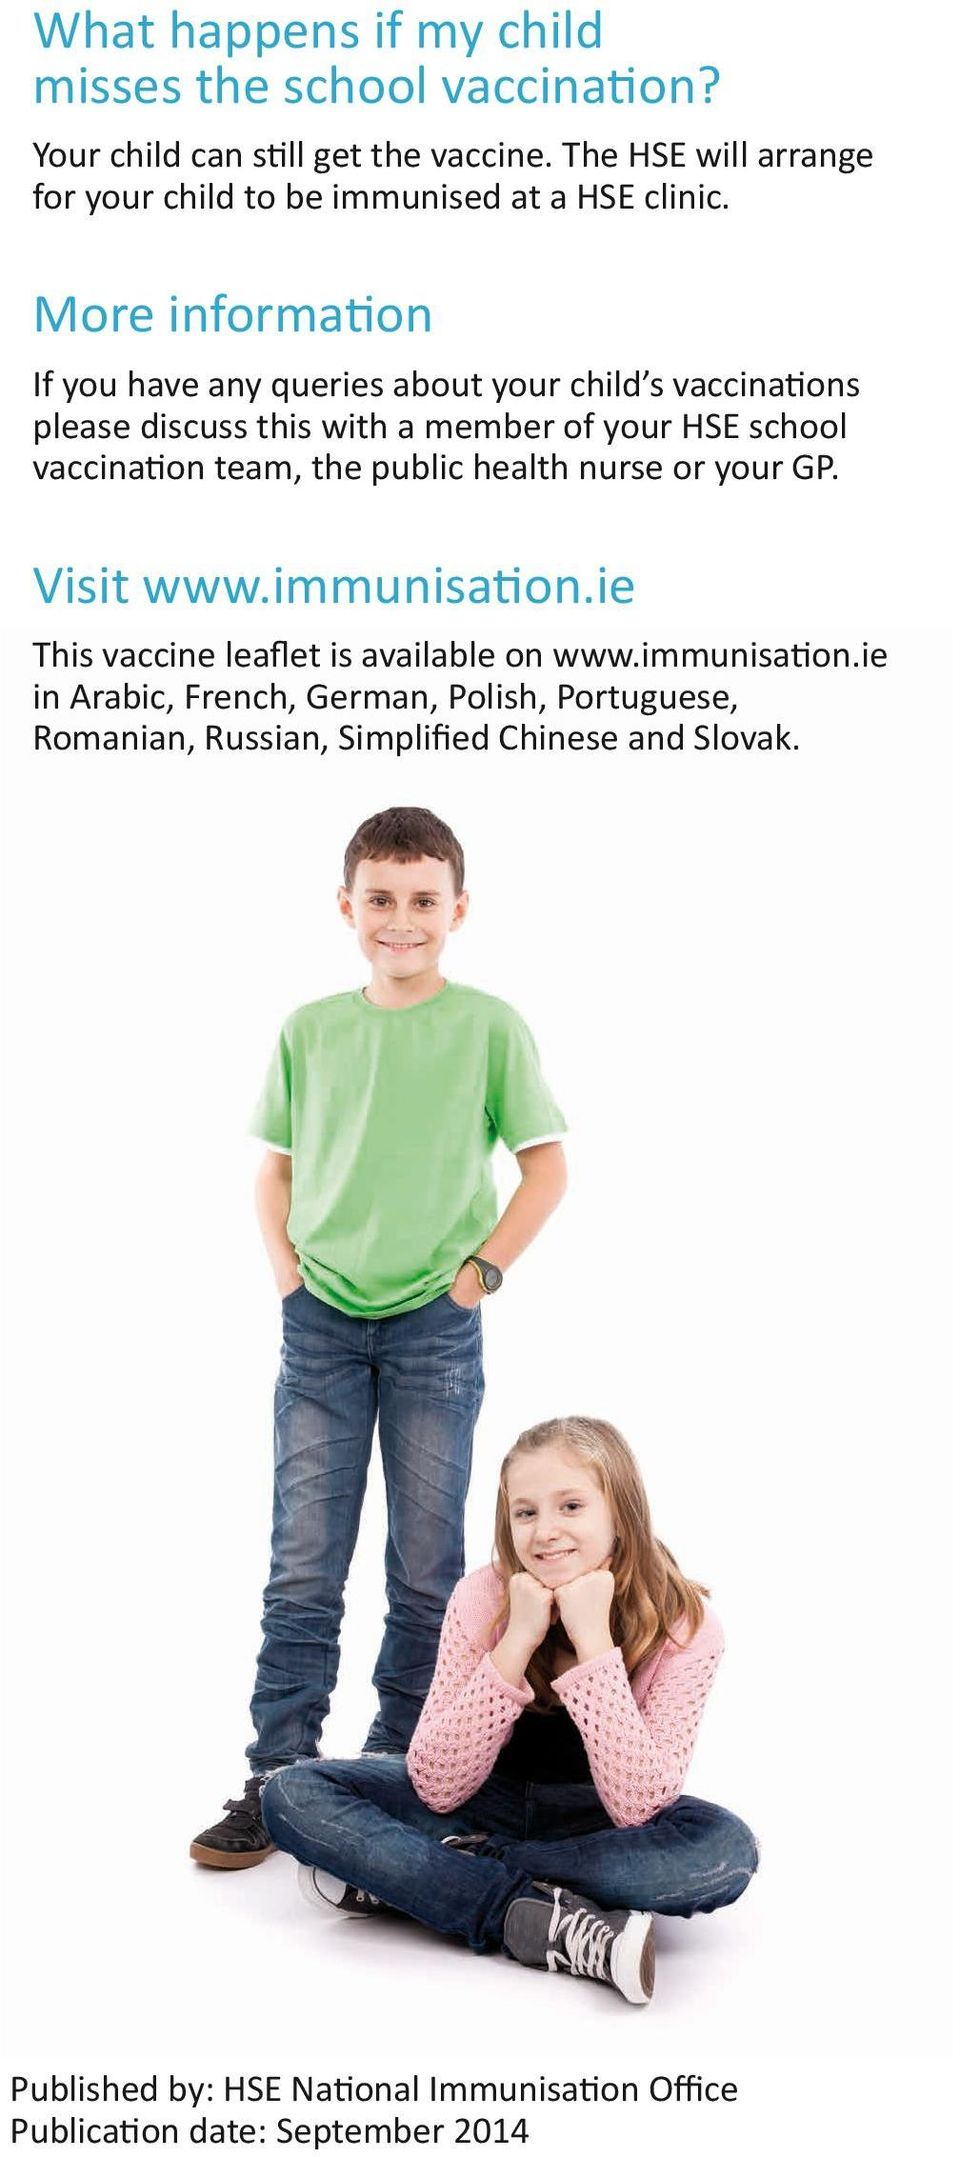 More information If you have any queries about your child s vaccinations please discuss this with a member of your HSE school vaccination team, the